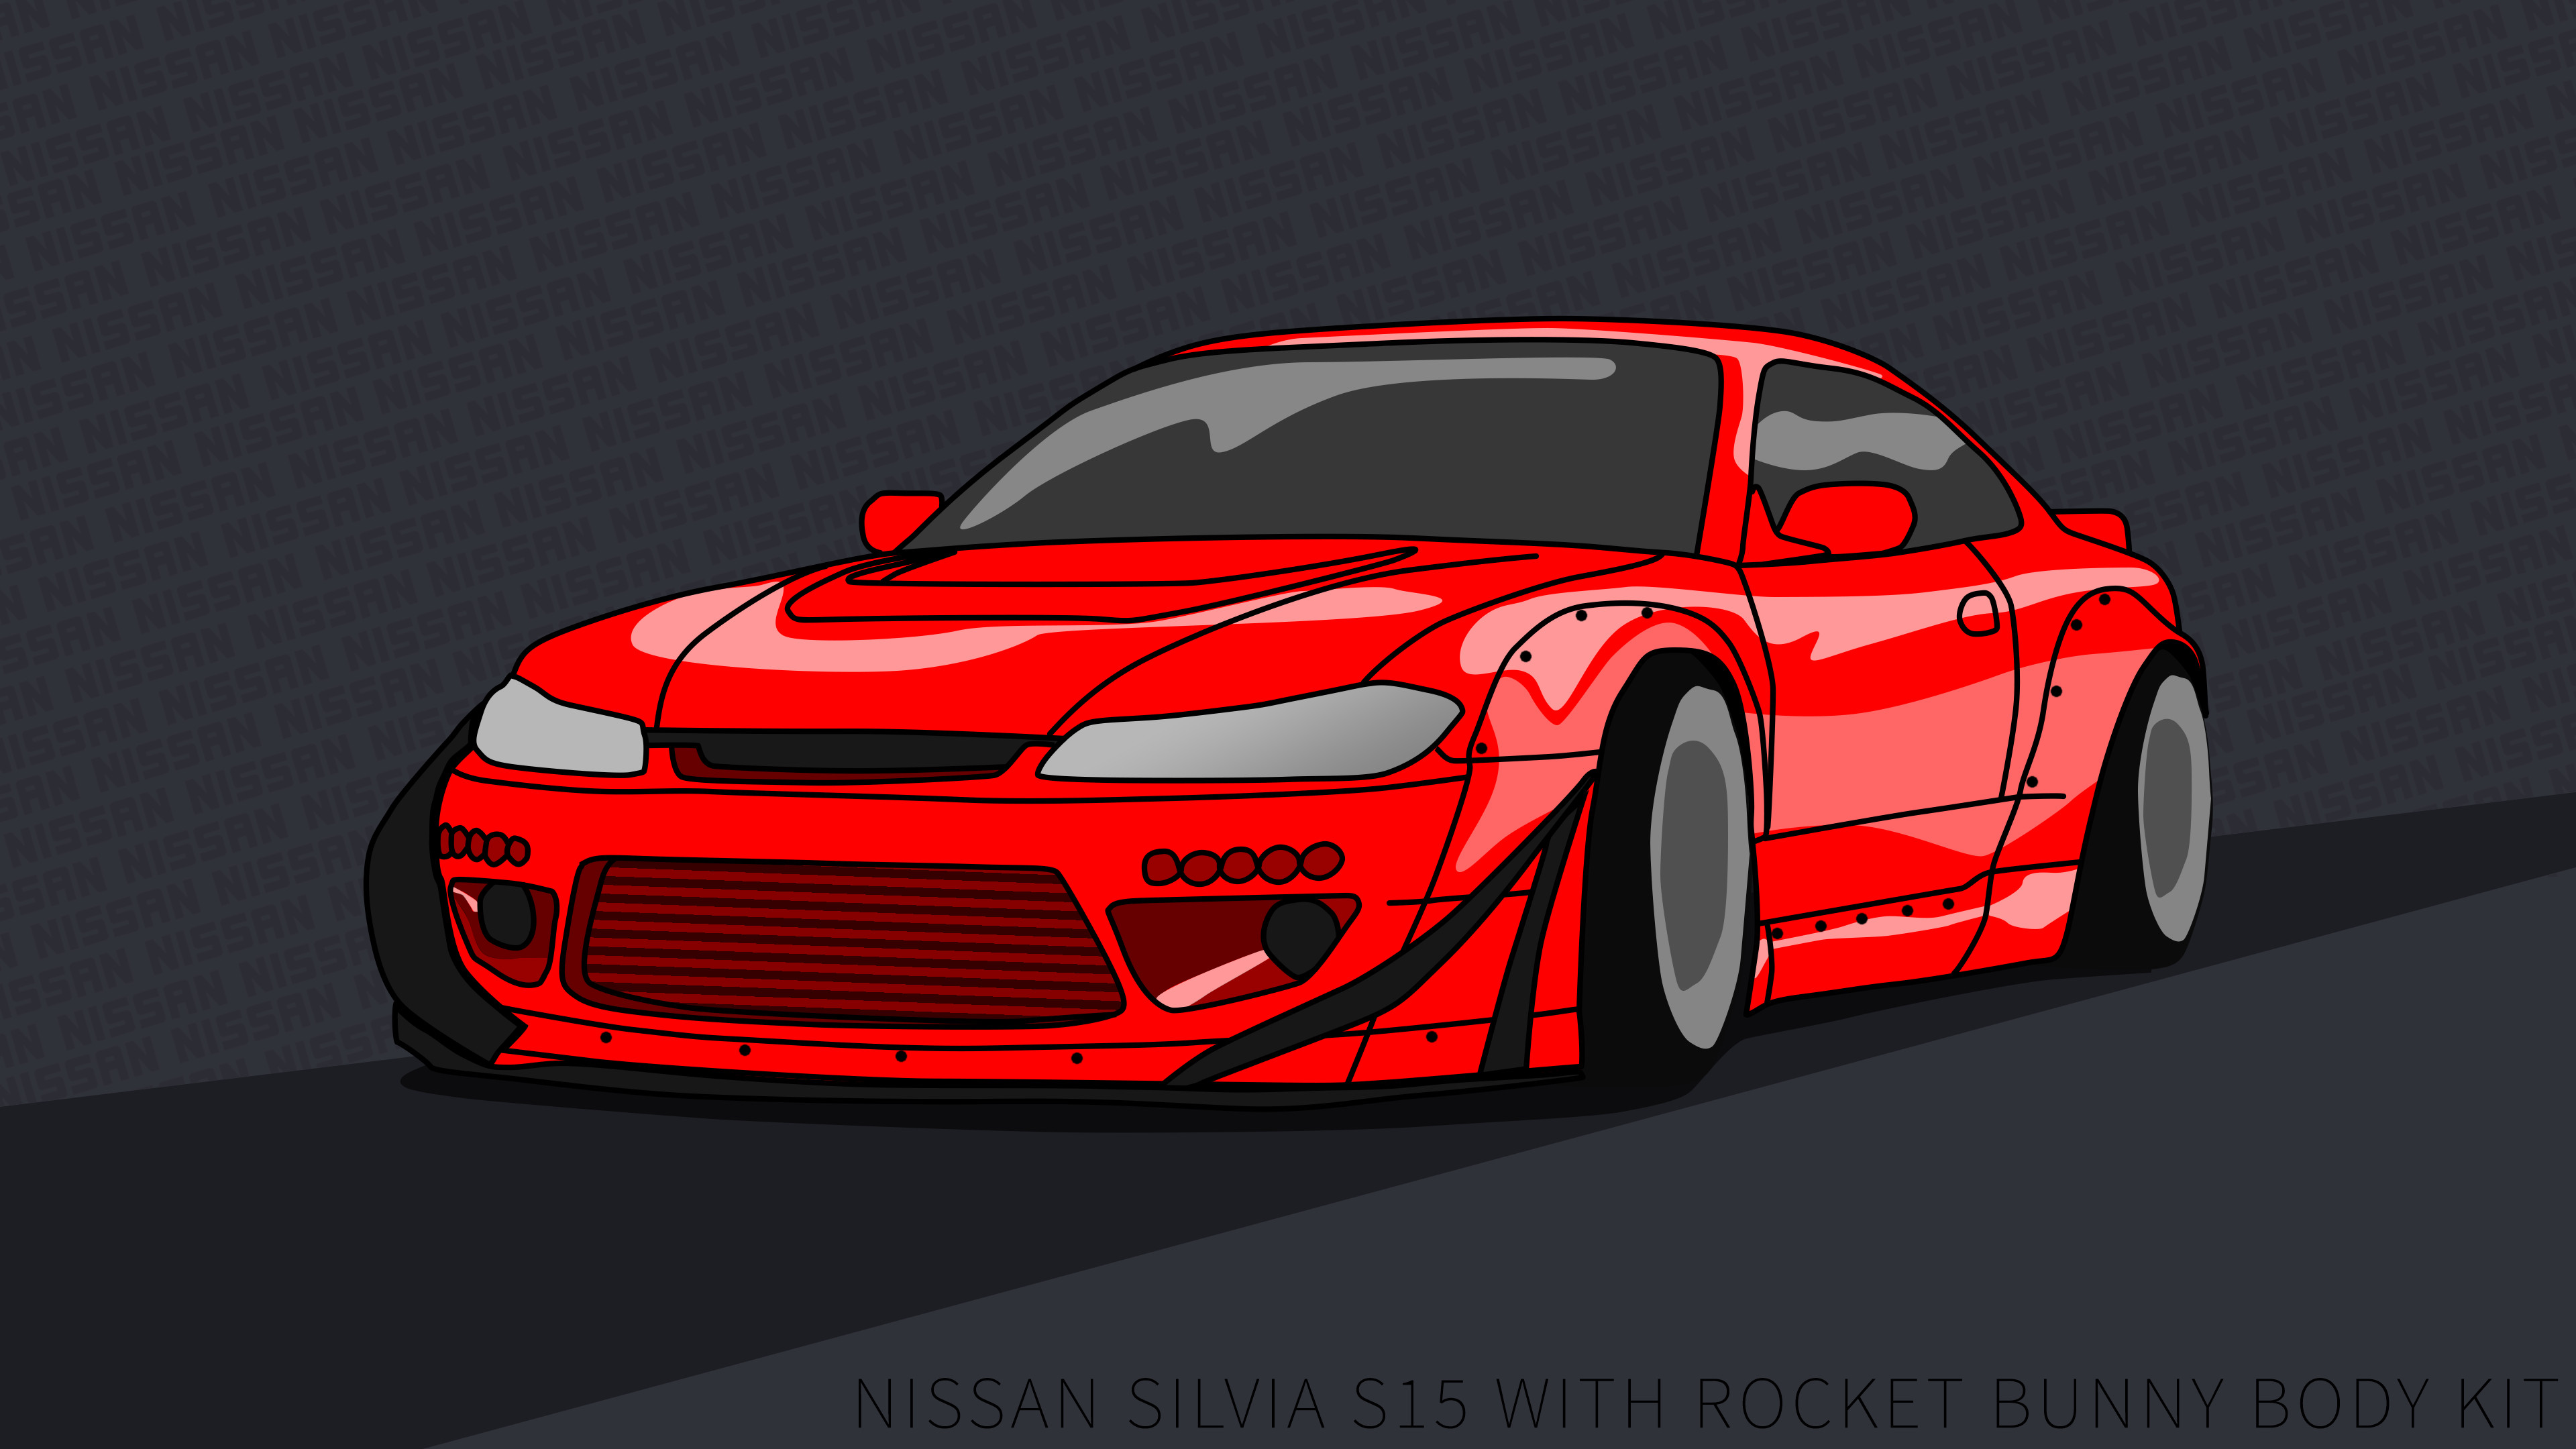 … Nissan Silvia S15 wallpaper 4k rocket bunny Red by ItsBarney01